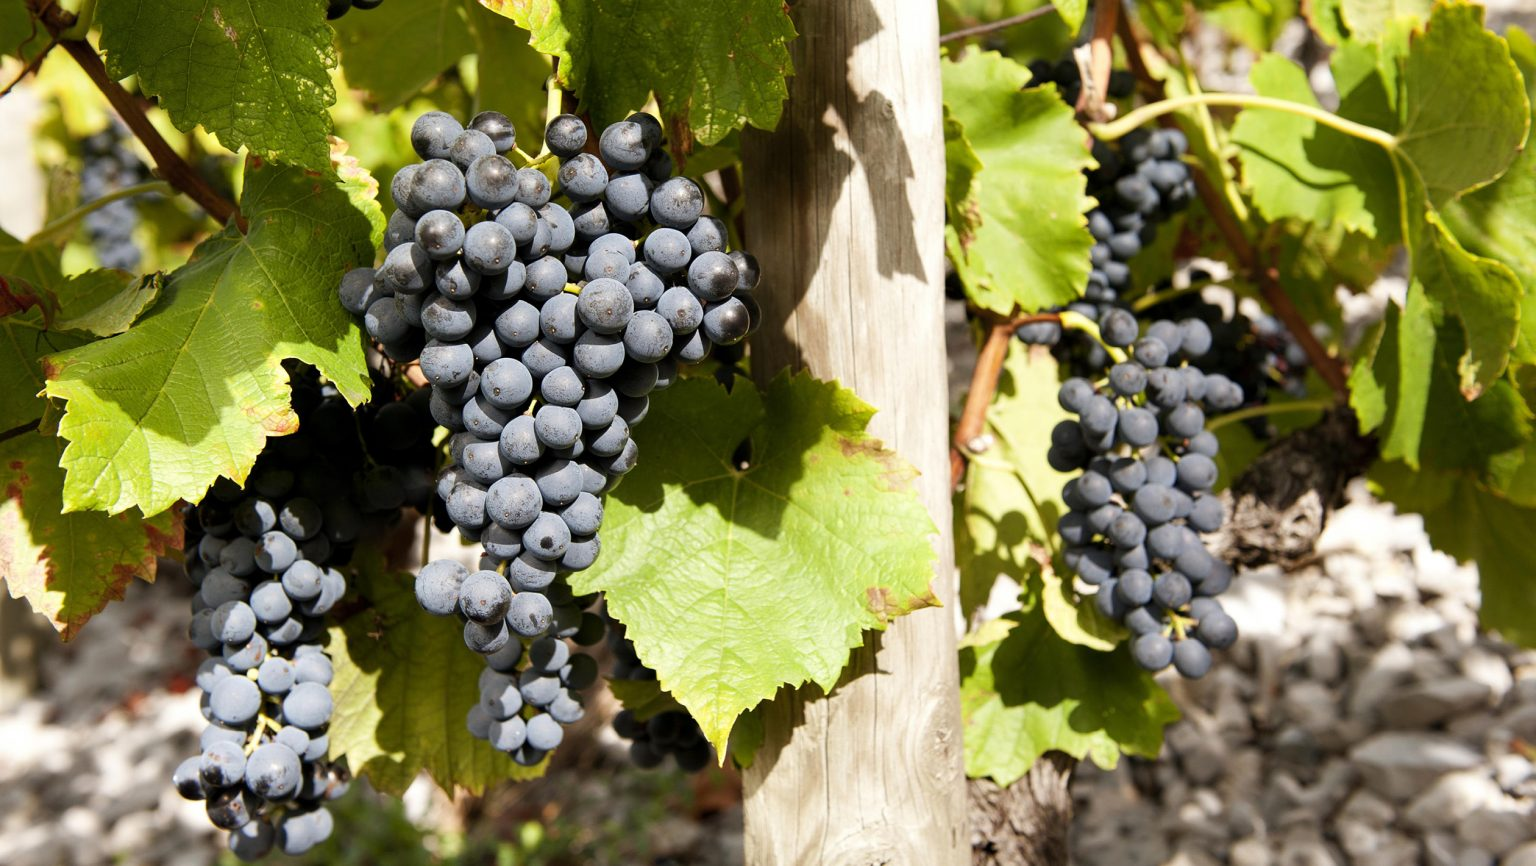 Why Mondeuse Is Gaining Popularity Among U.S. Somms